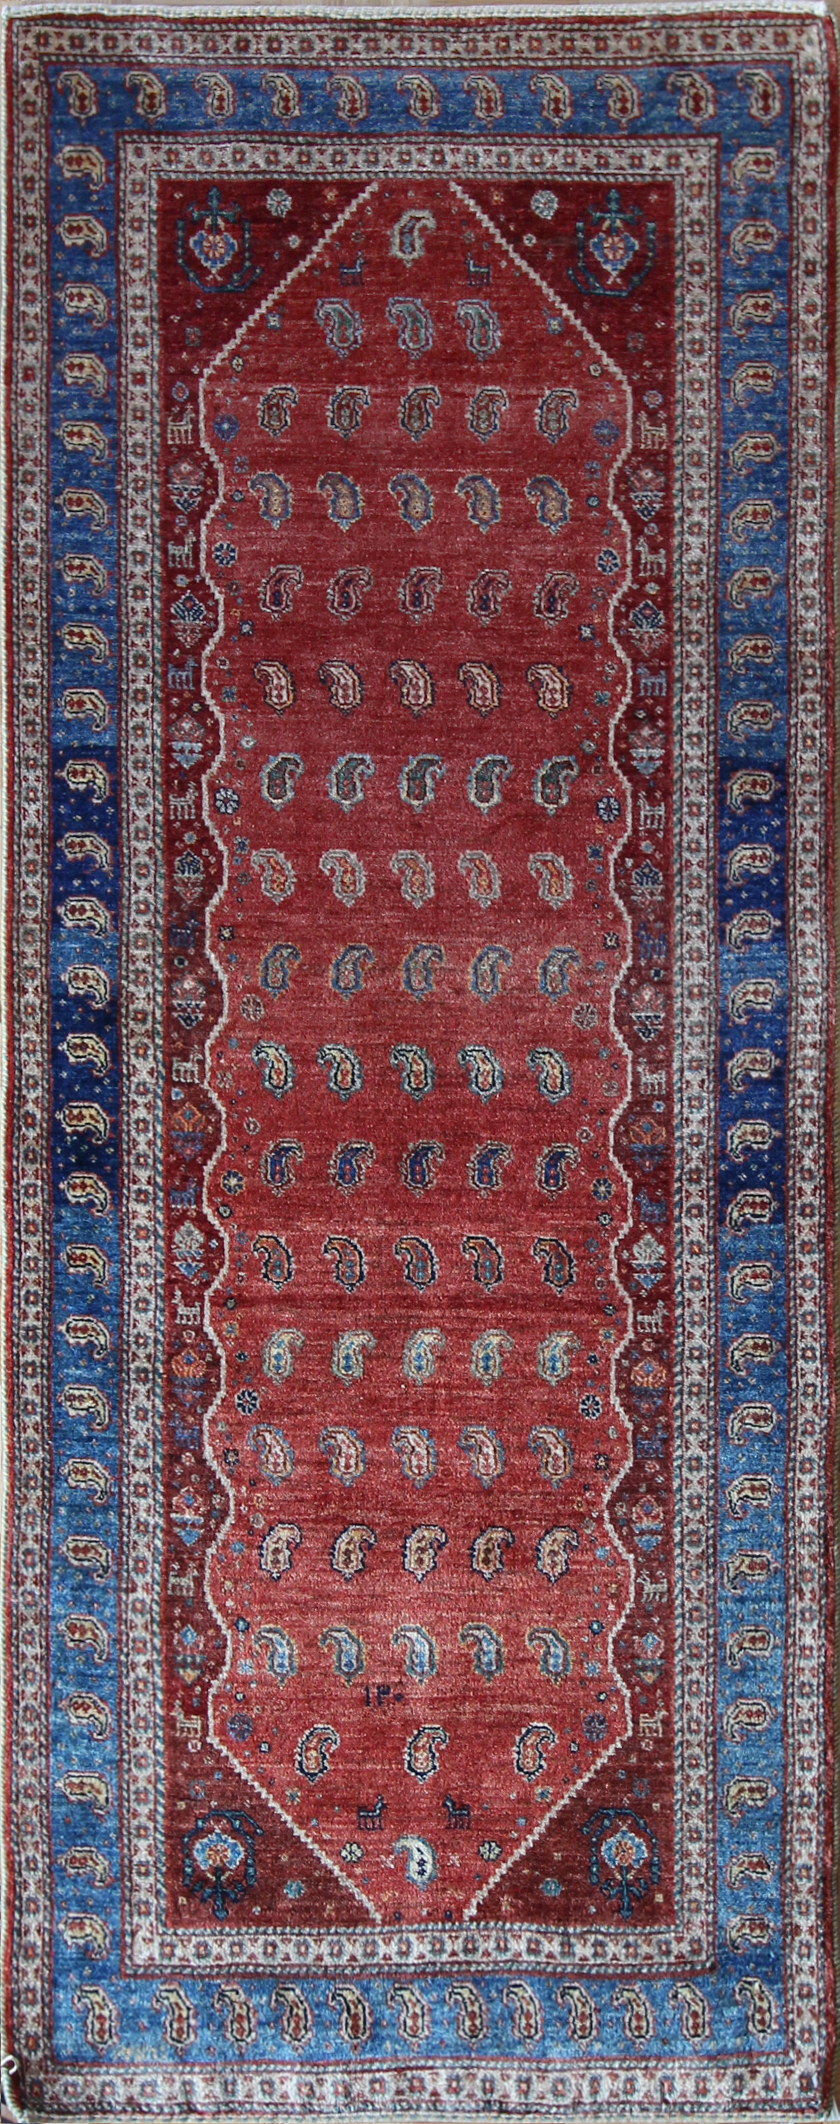 608 Luri Bakhtiari, woven by Nomads in S.W. Persia, 2'9'' x 7'